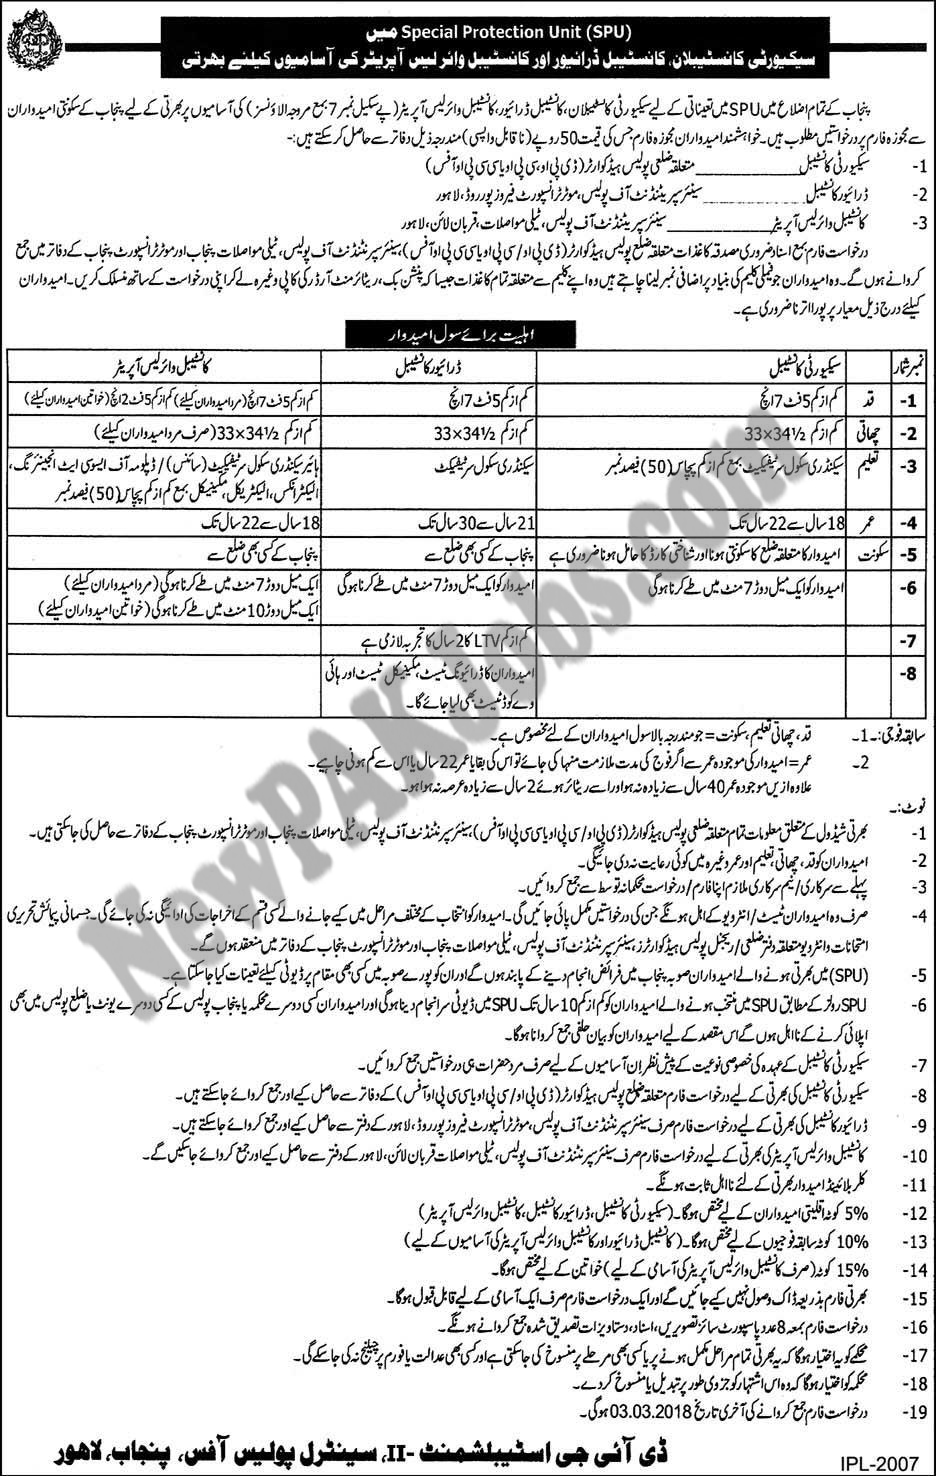 Latest Jobs in Punjab Police, Special Protection Unit for